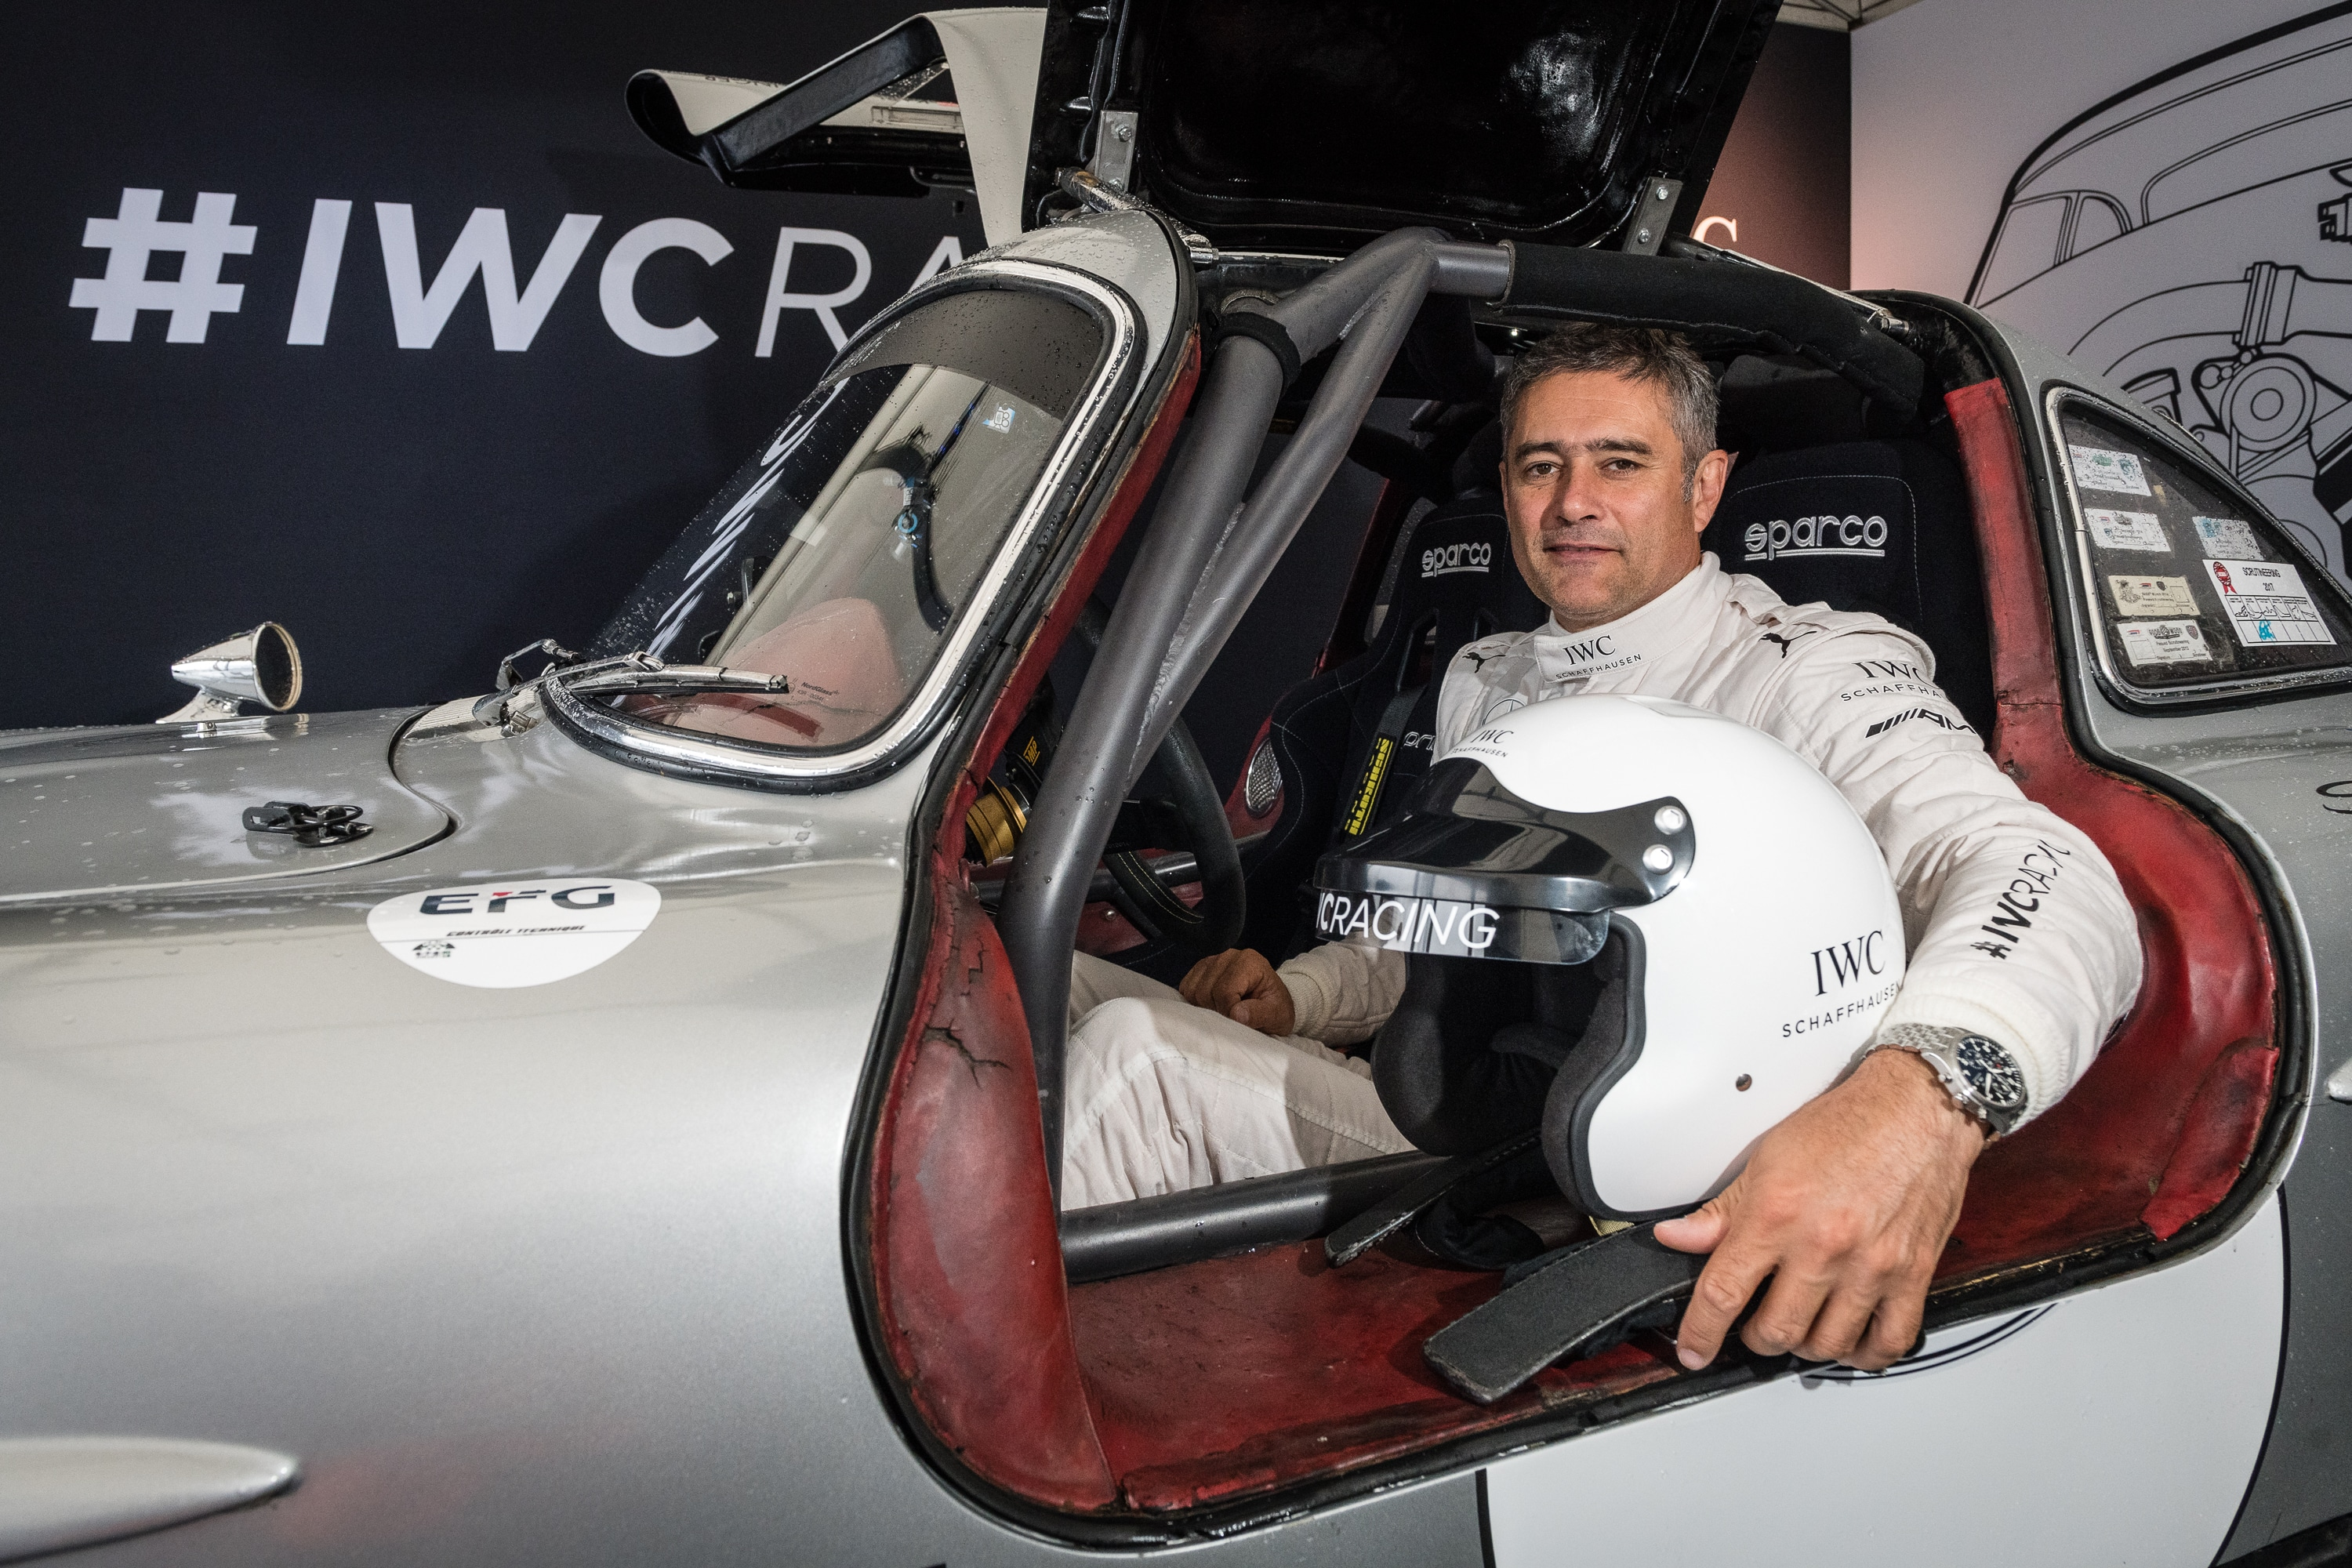 AROSA, SWITZERLAND – 03. September 2018: IWC Racing Team made its official Swiss debut at the 14th Arosa ClassicCar. Former FORMULA ONE driver Karl Wendlinger drove the Mercedes-Benz